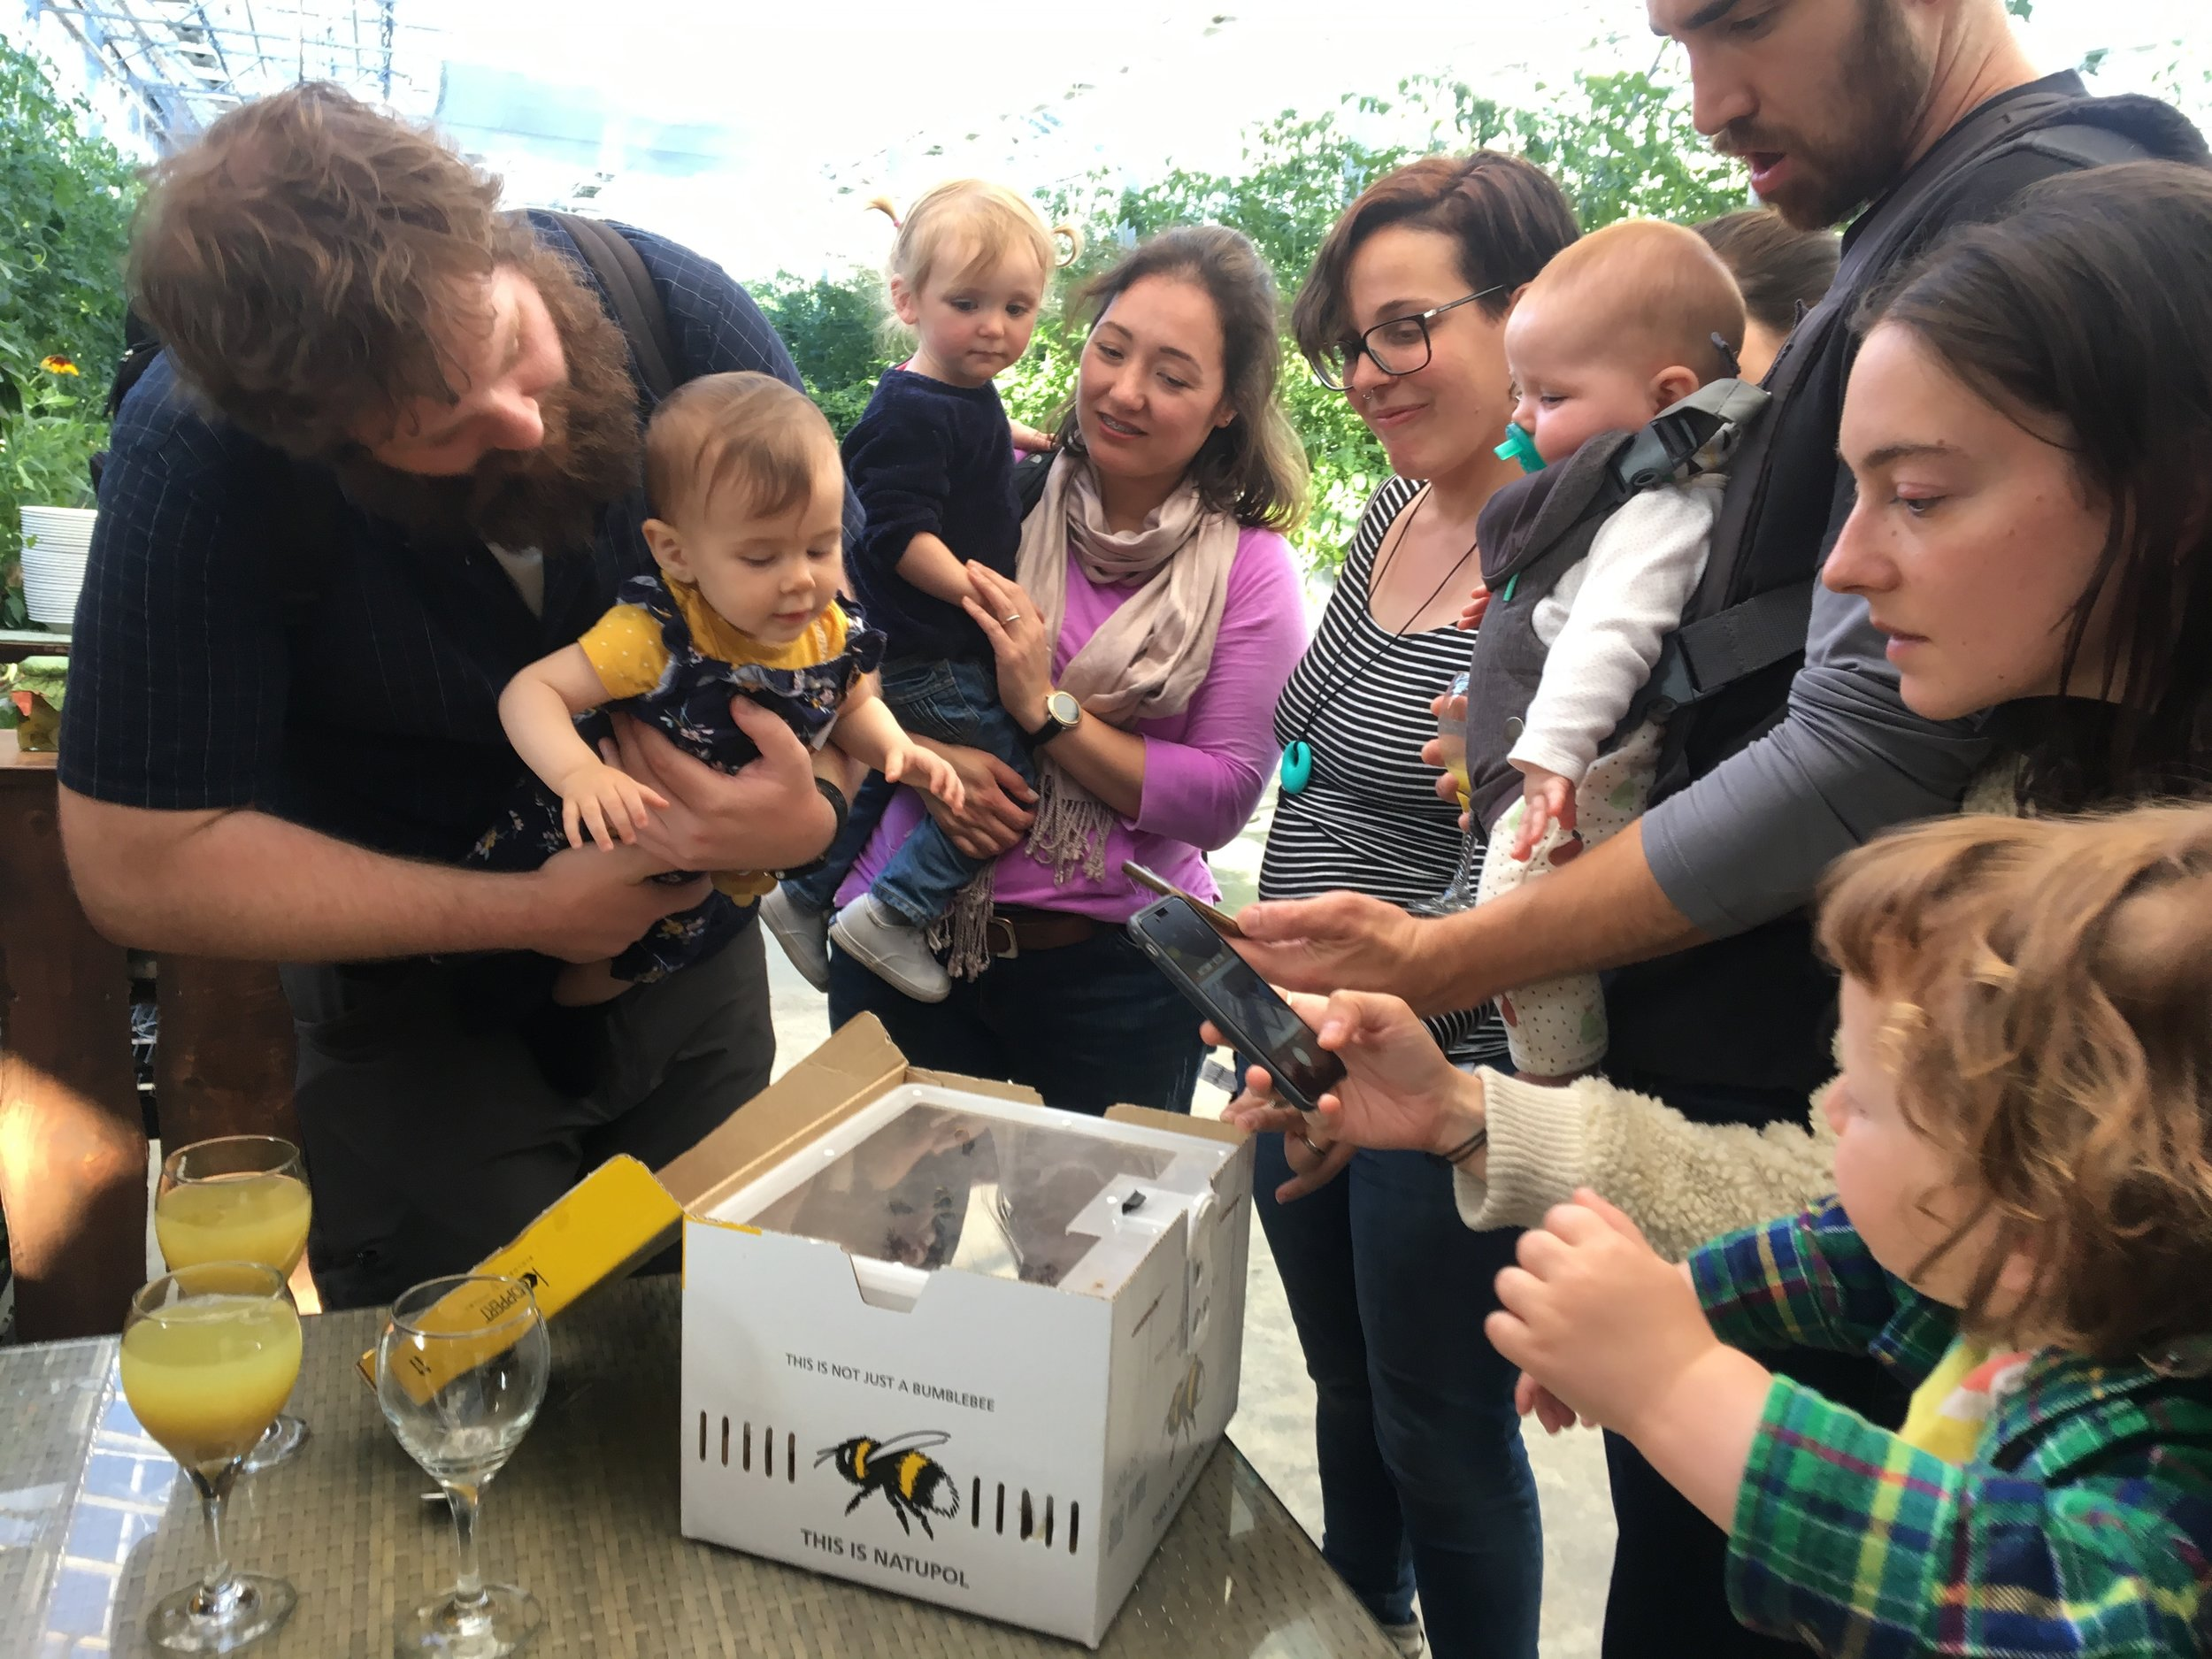 A fun sight for the kids at the wedding — a box of bees!